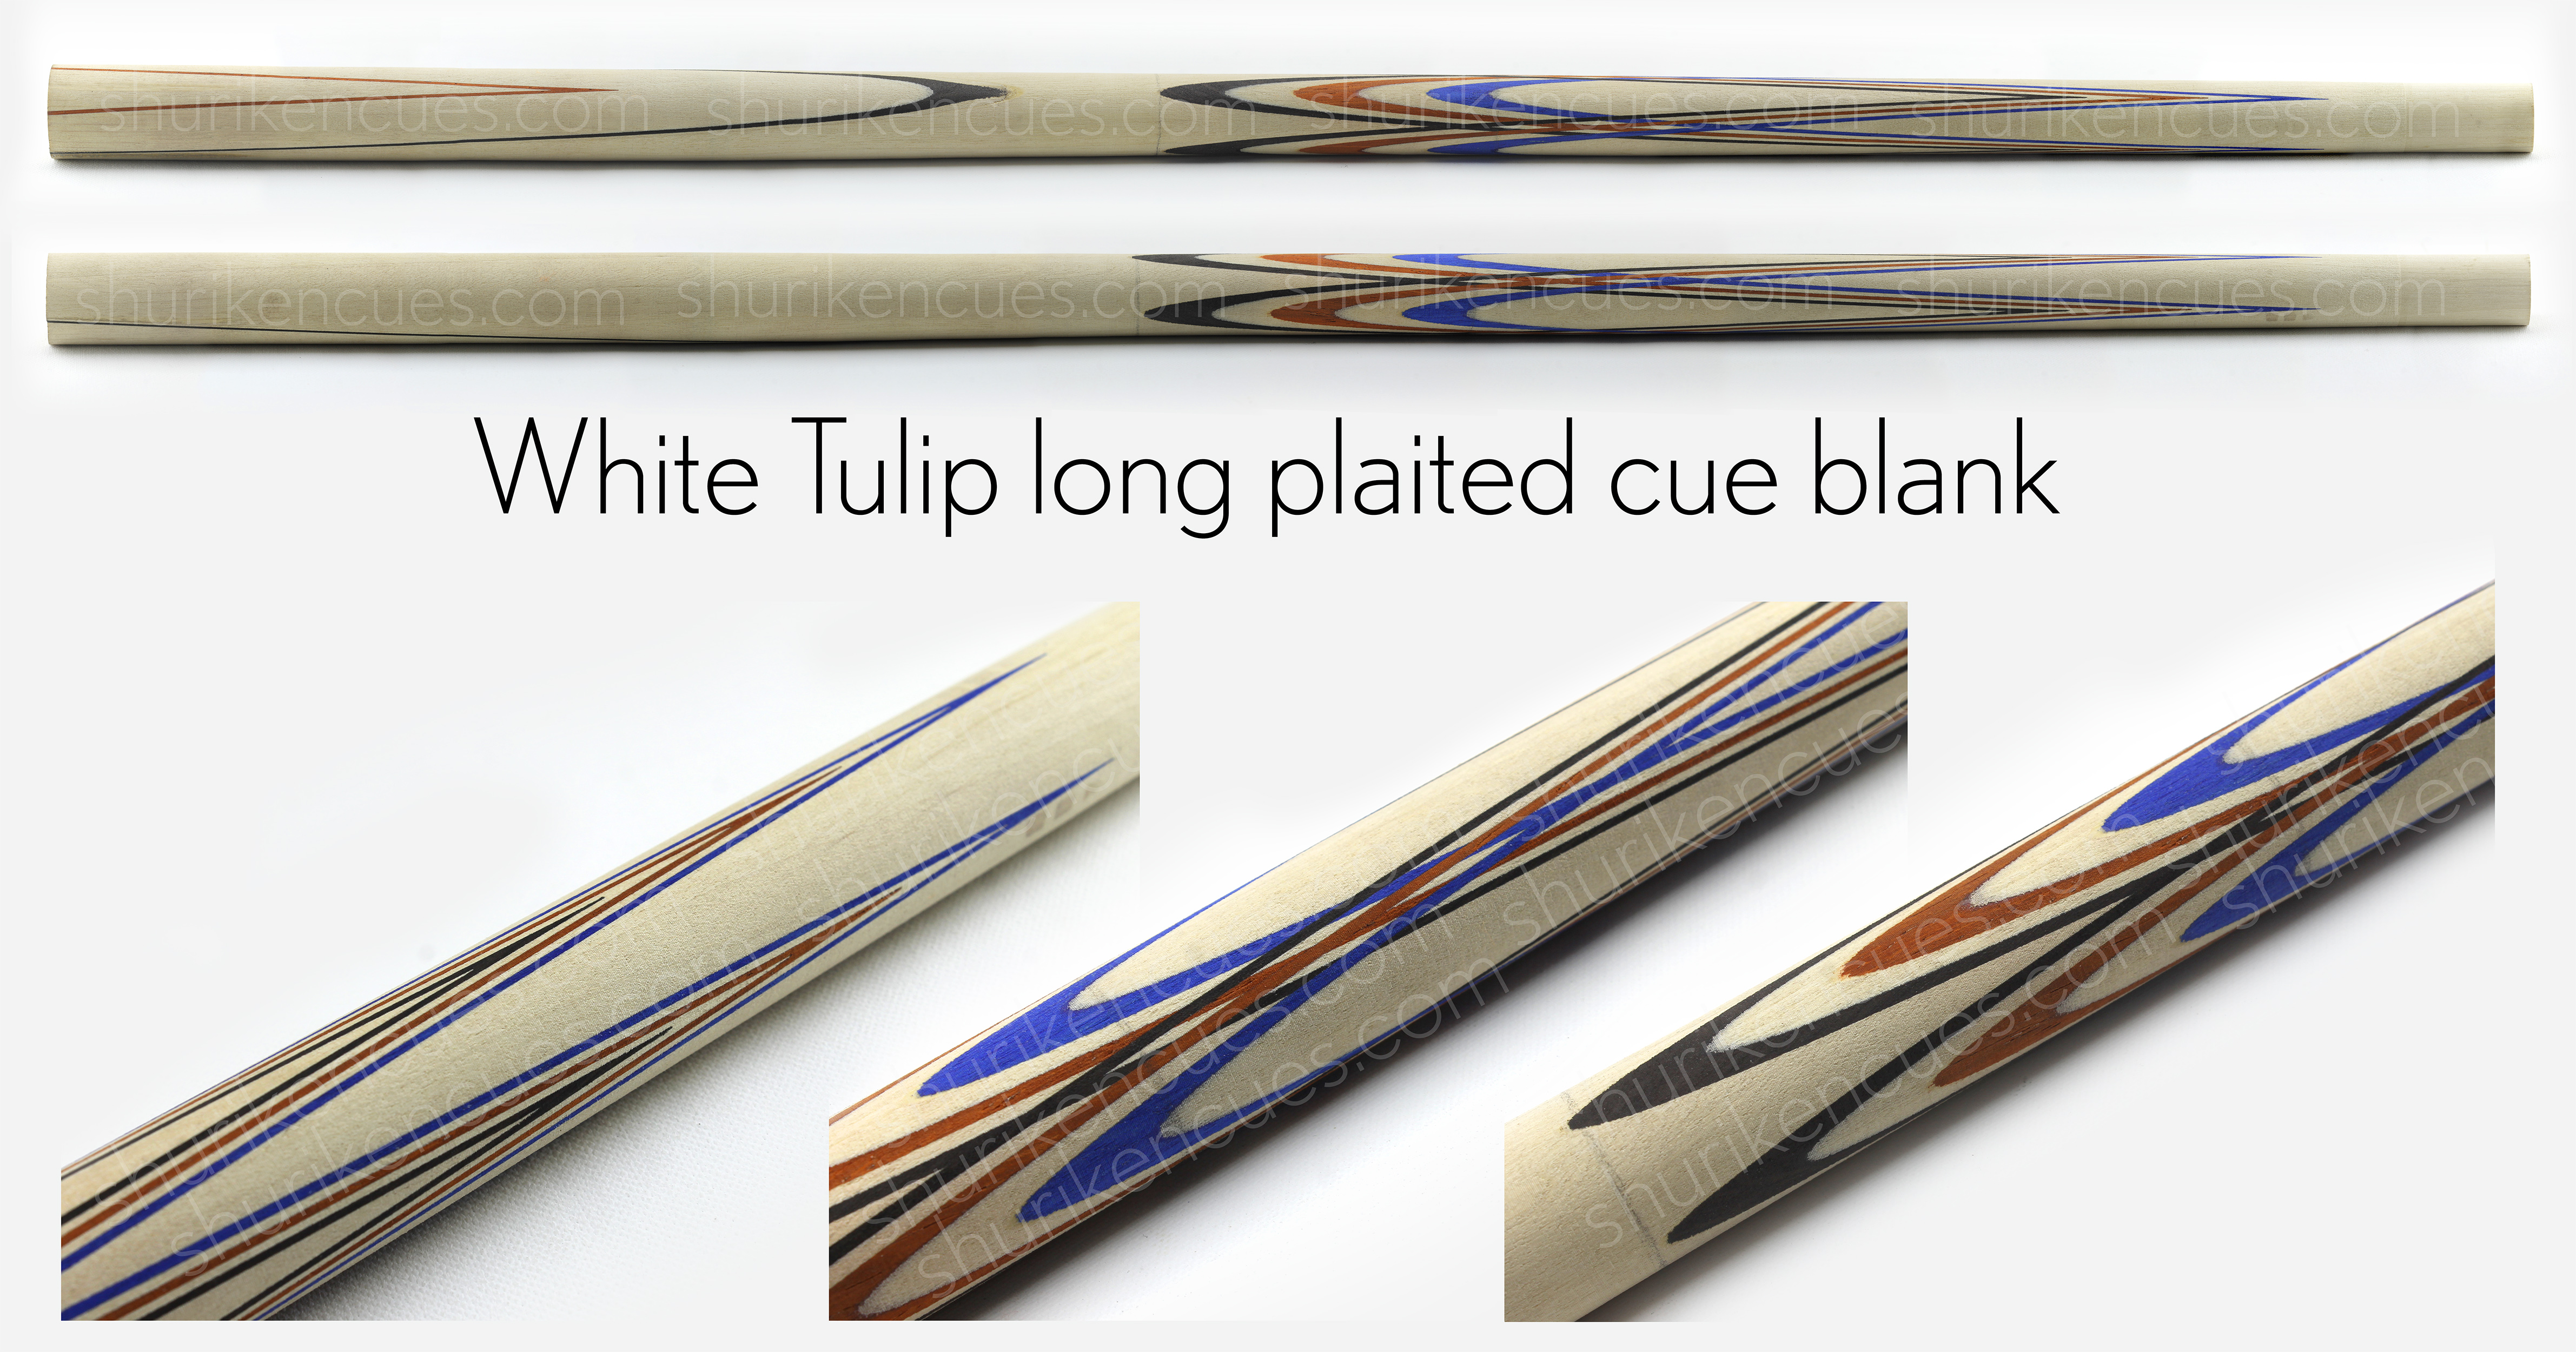 white cue blank tulip long plaited white cue blank tulip plaited white